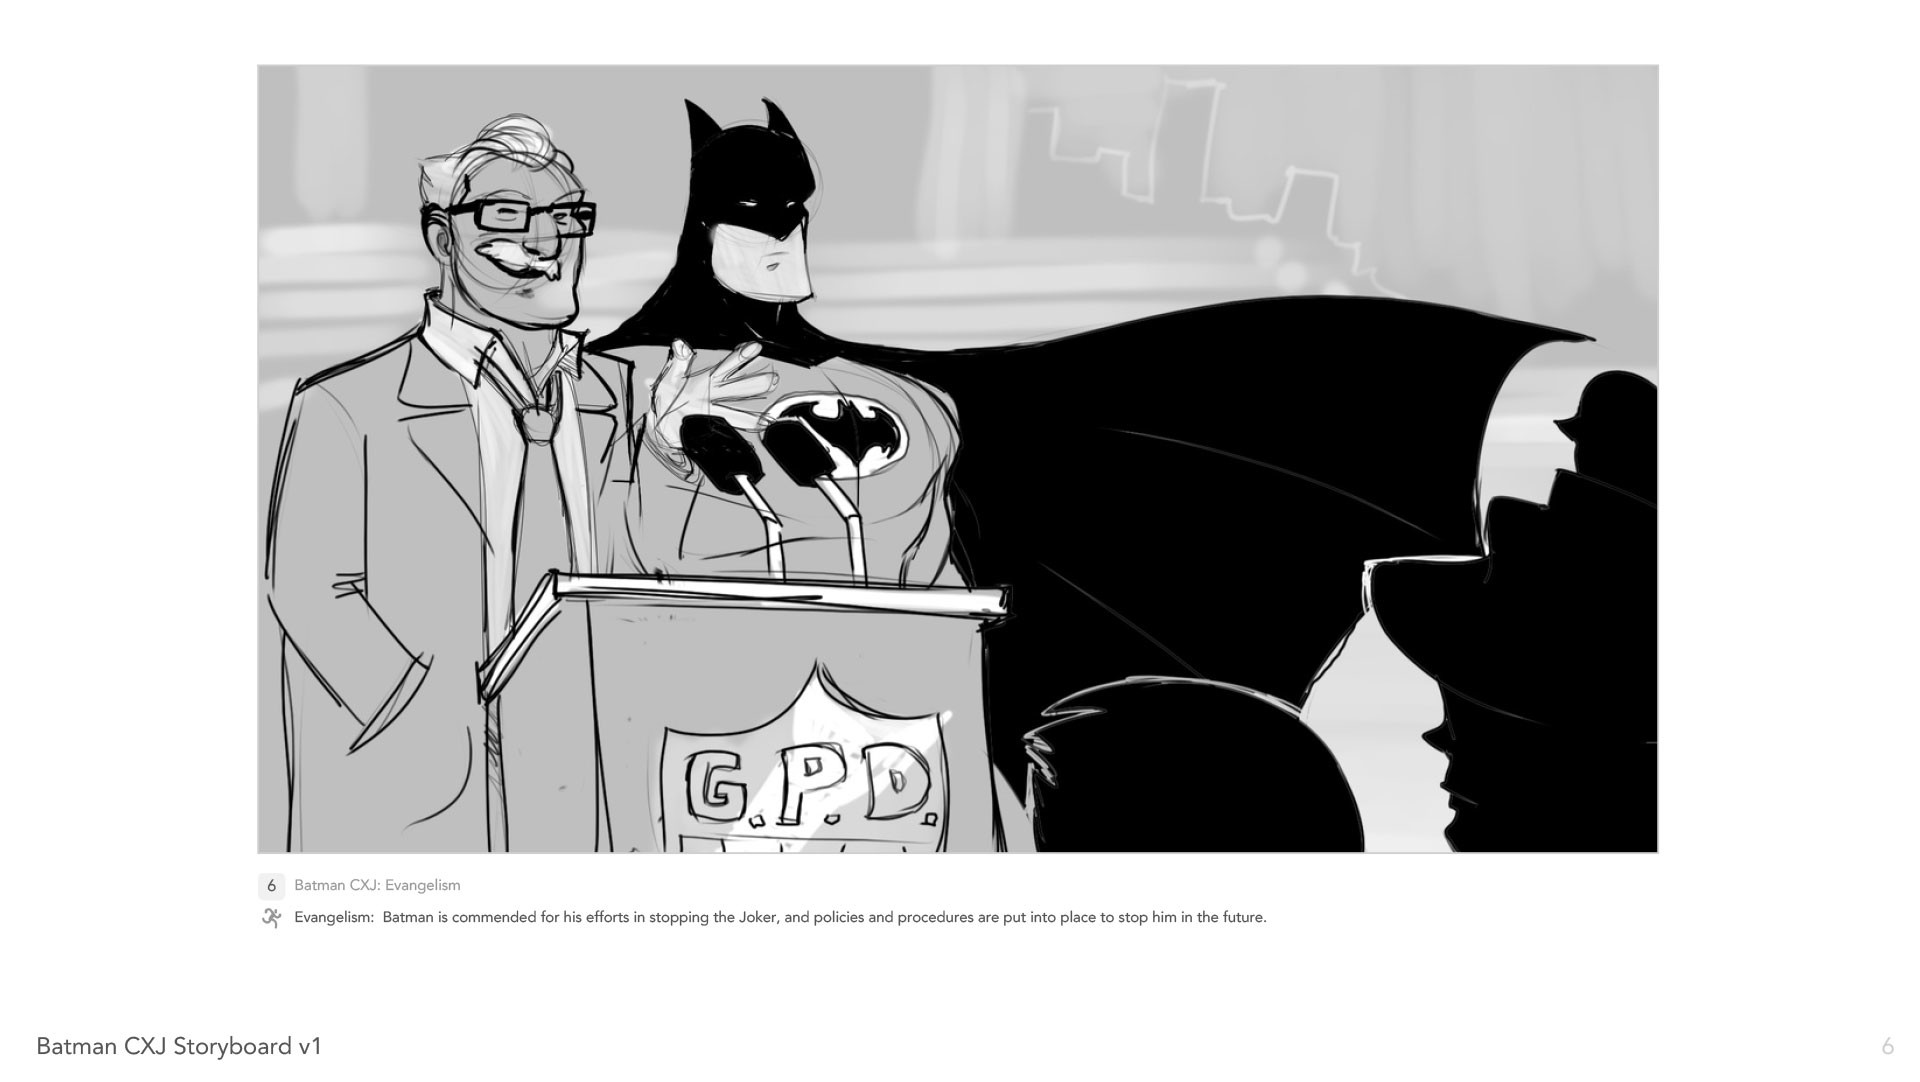 Chx welch batman cxj storyboard v1 7